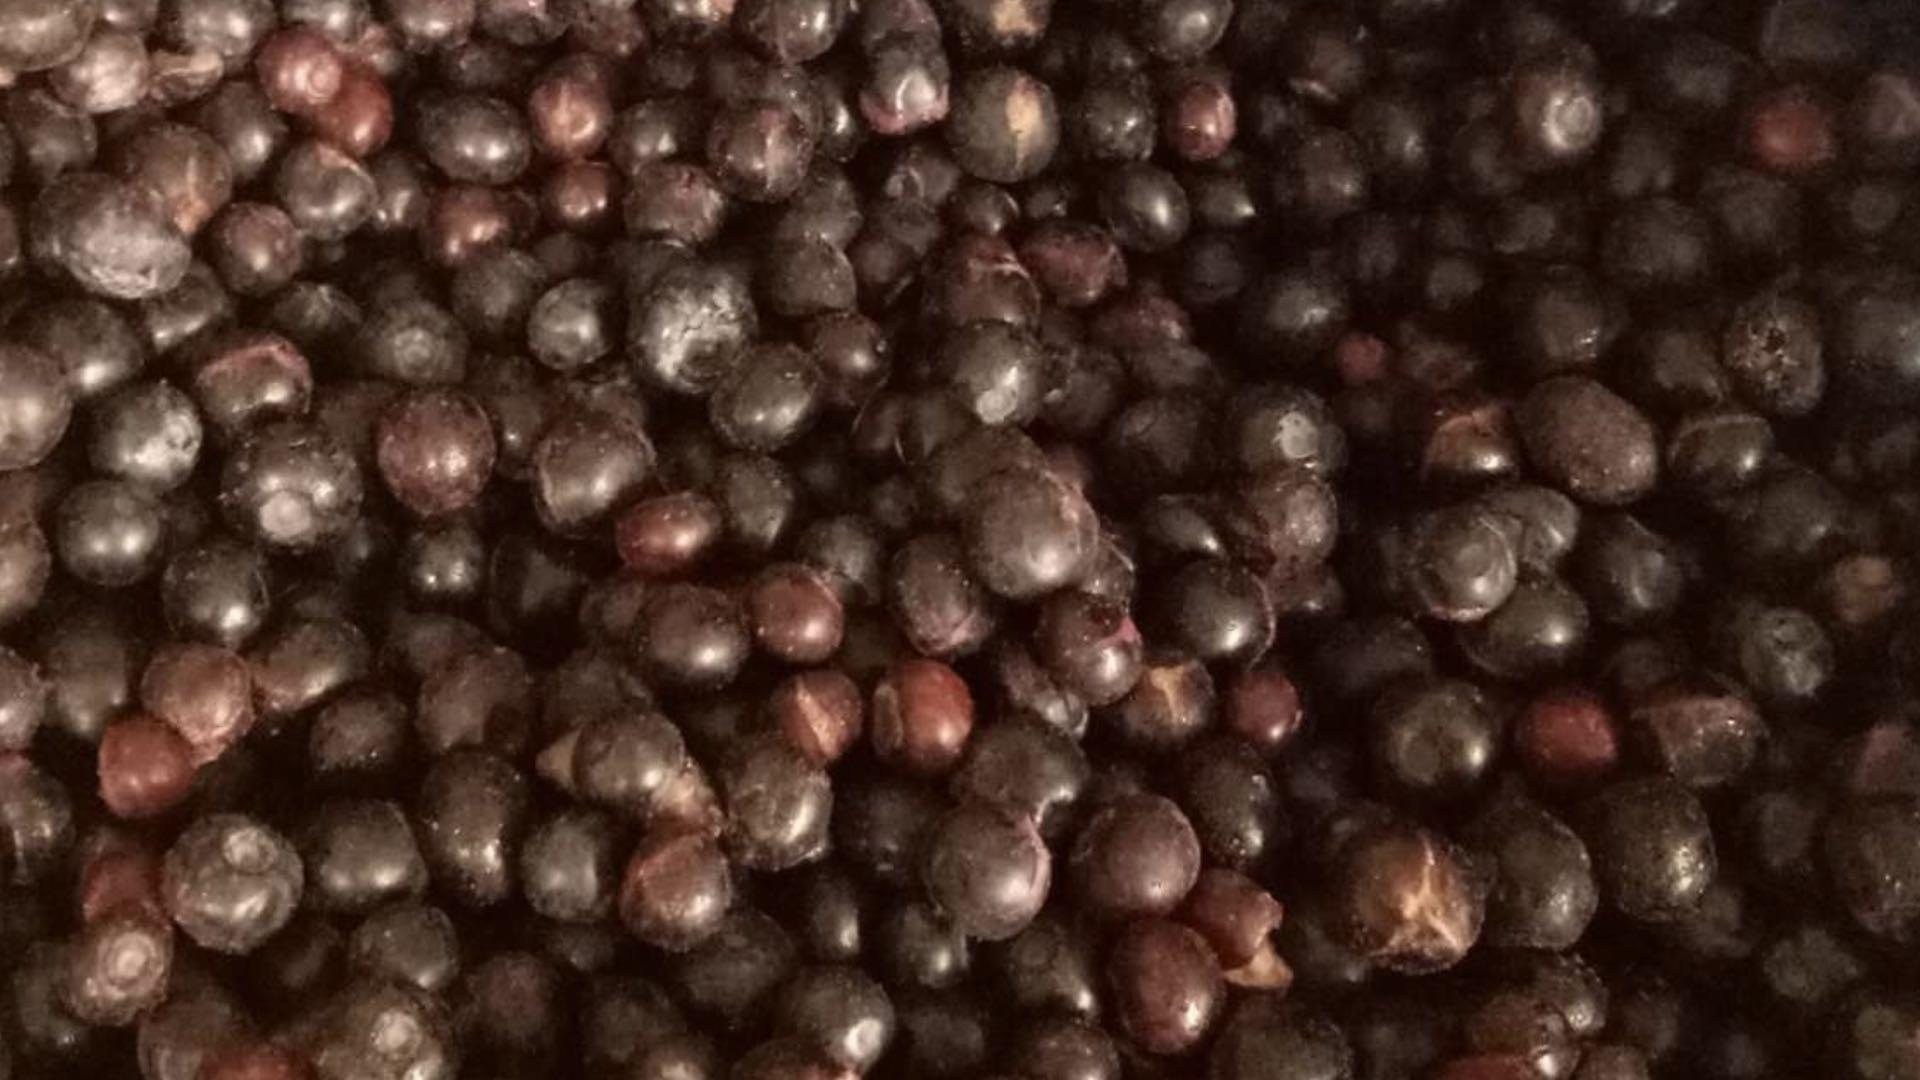 IQF blueberry,IQF Blueberries,Frozen Blueberries,cultivated 12